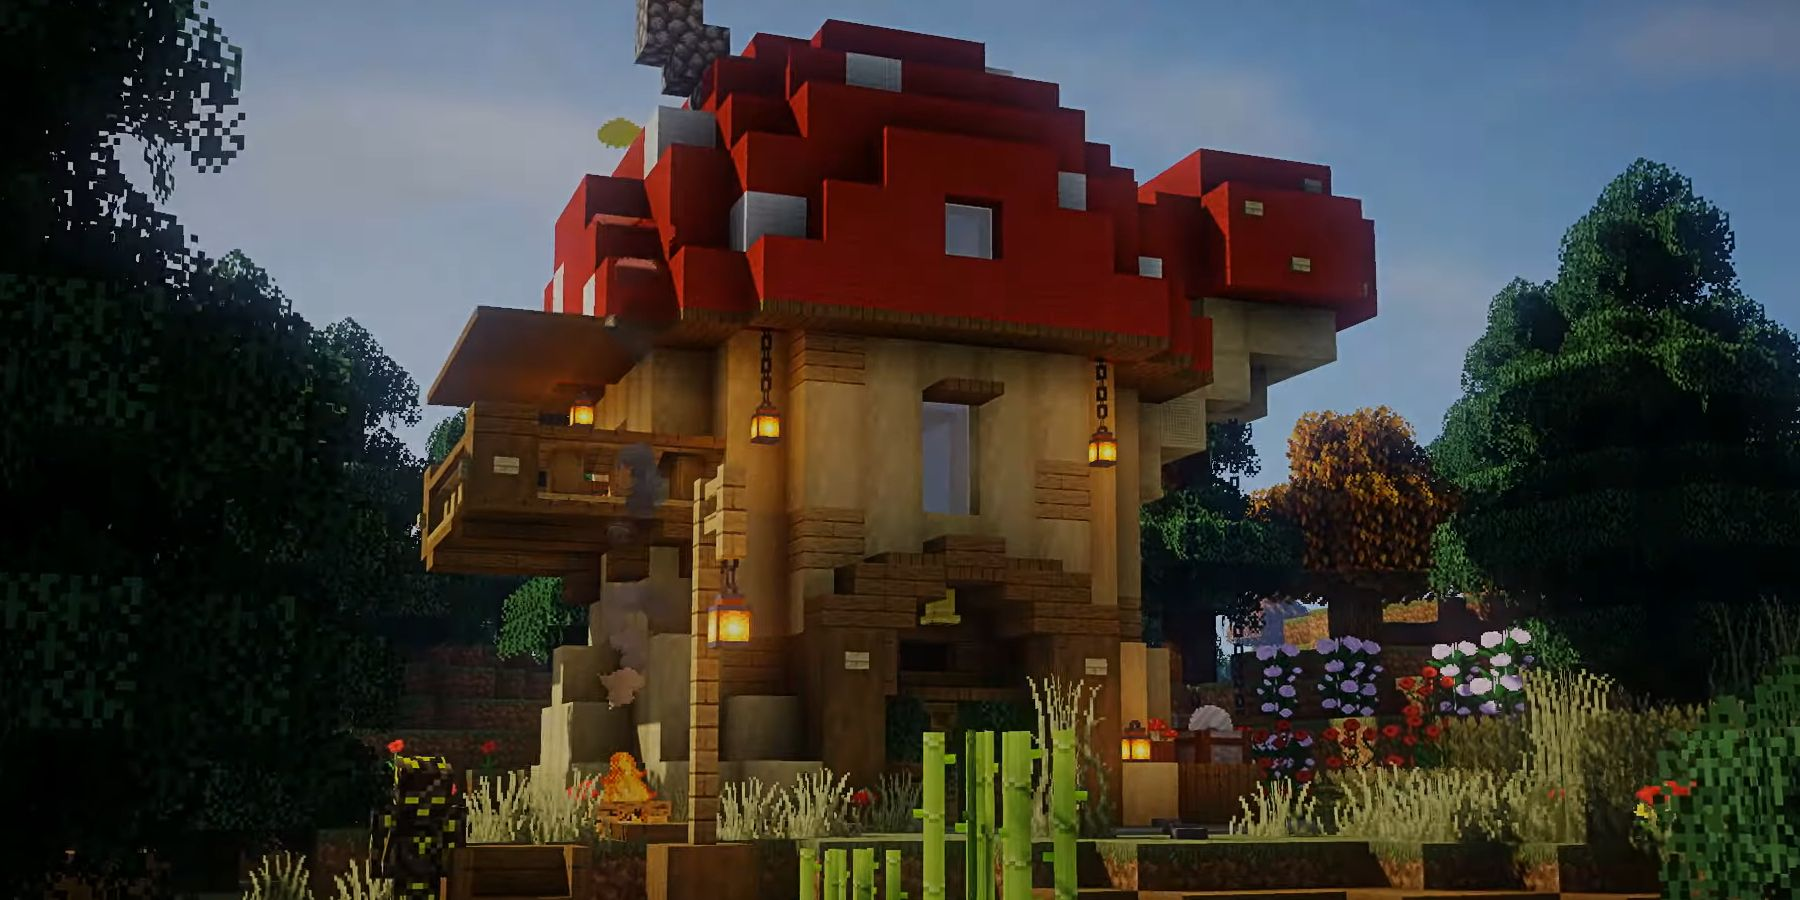 The Coolest House Building Ideas for Minecraft | Screen ...